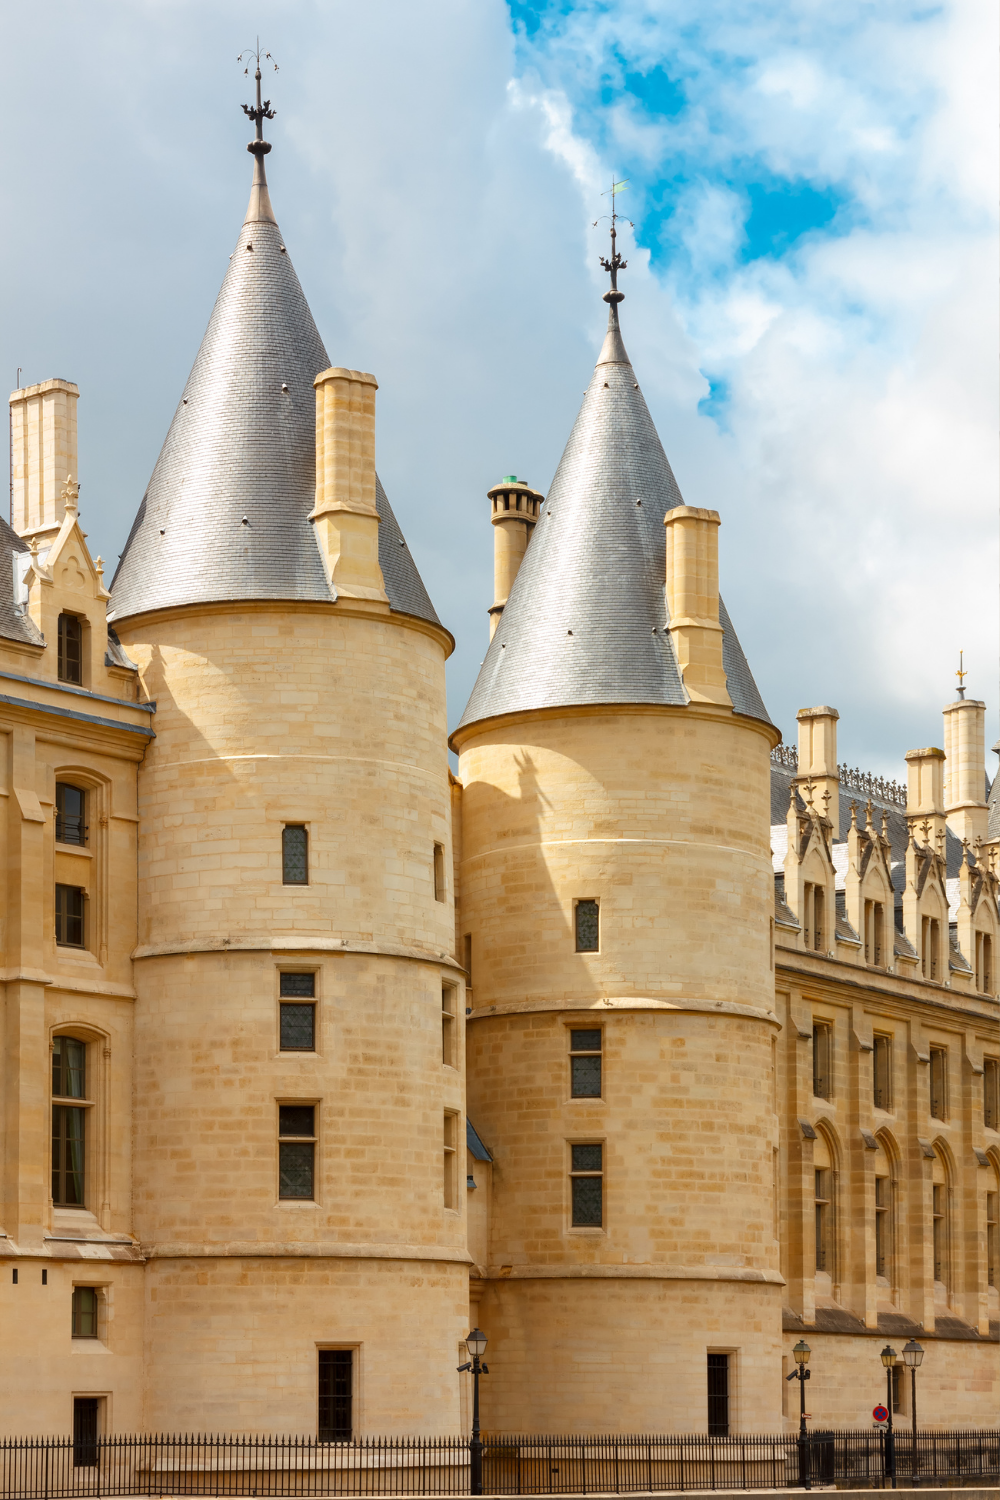 pointy towers of the Conciergerie